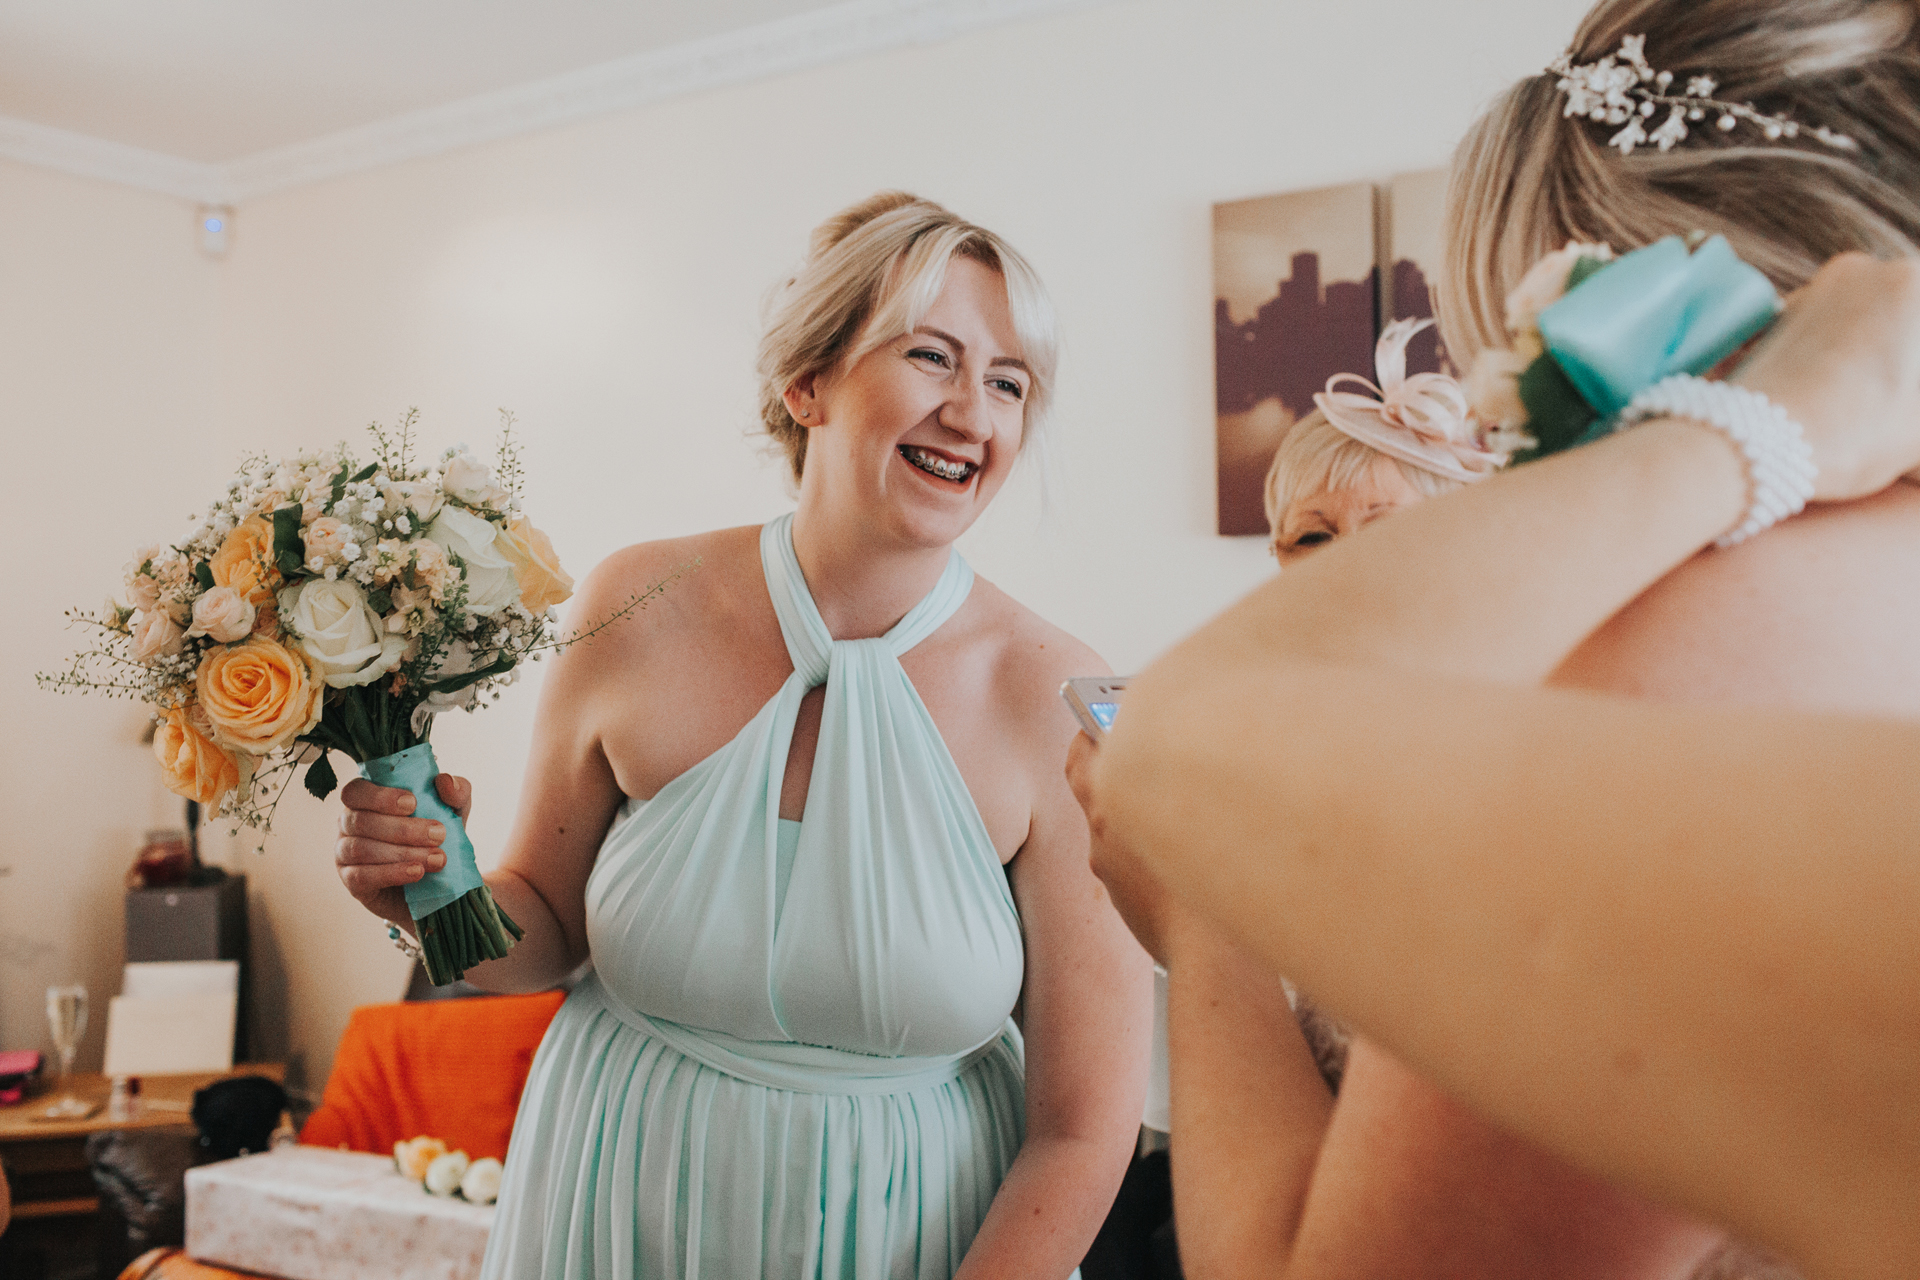 Bridesmaid leans forward laughing holding her flowers.